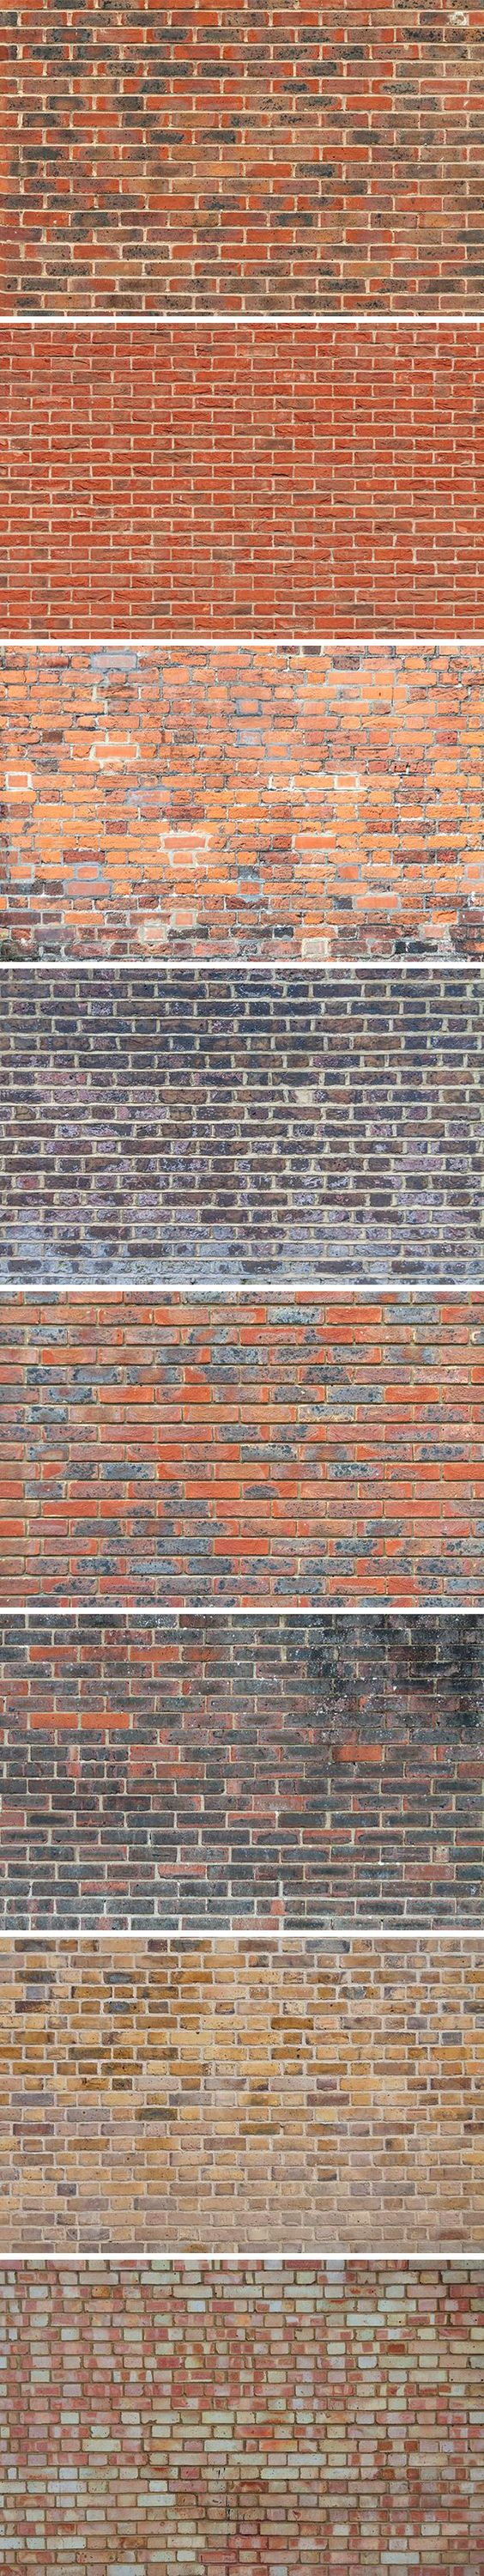 Brick Wall Textures - Today we have for you a collection of 8 high resolution brick wall textures. Feel free to use them for anything from wallpapers...